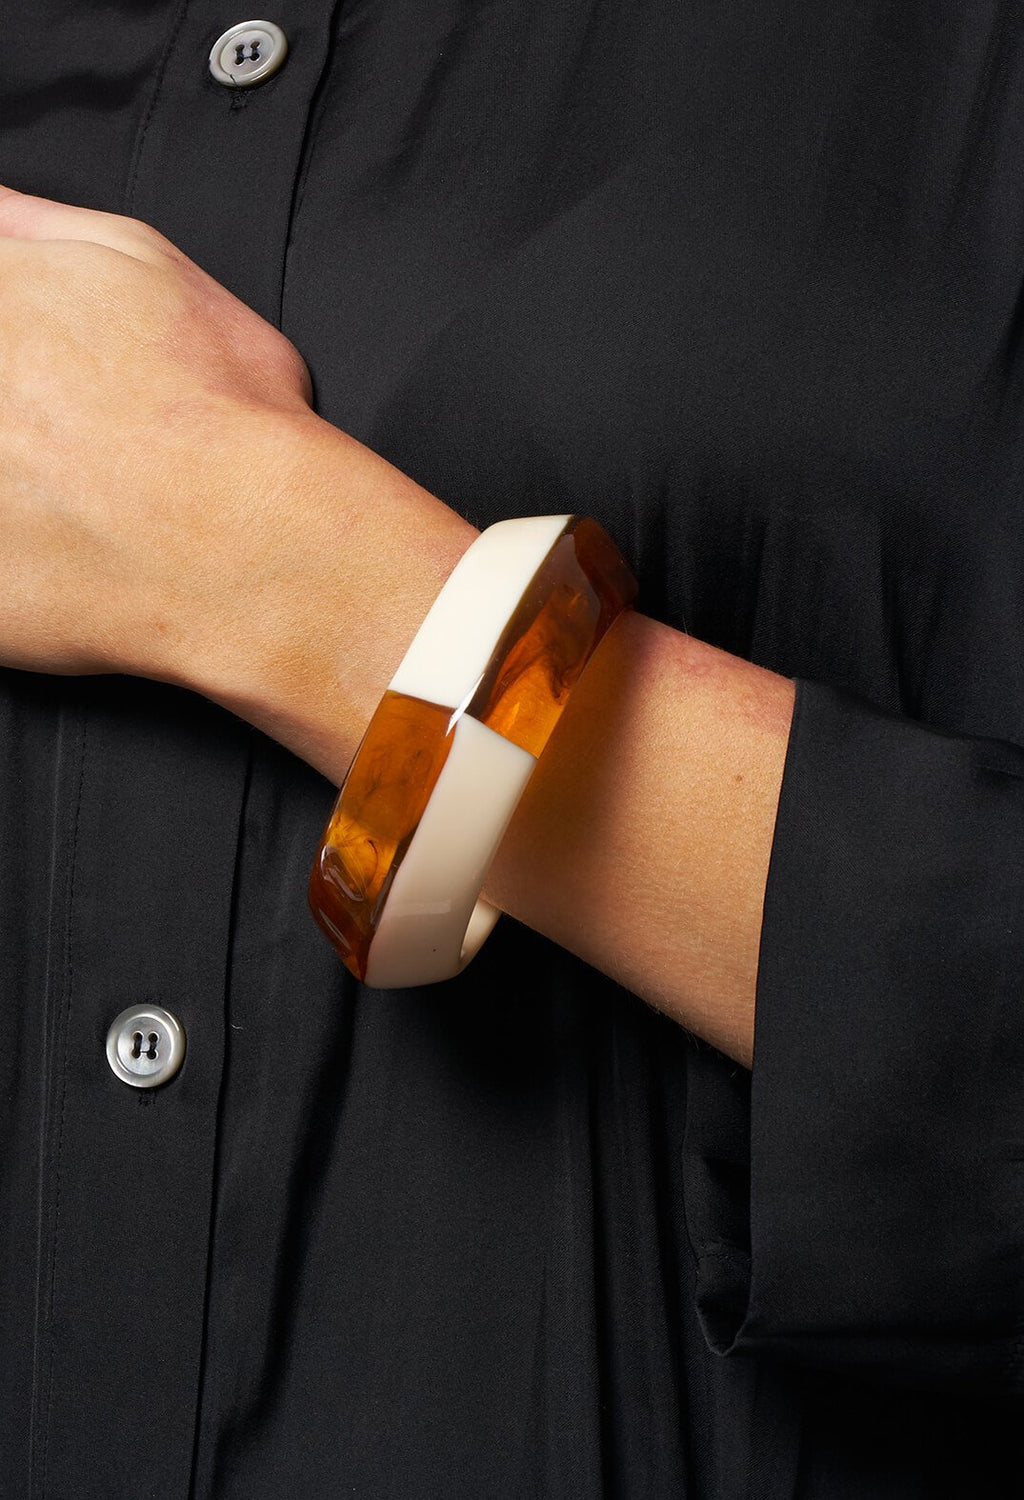 Bangle in Beige / Amber